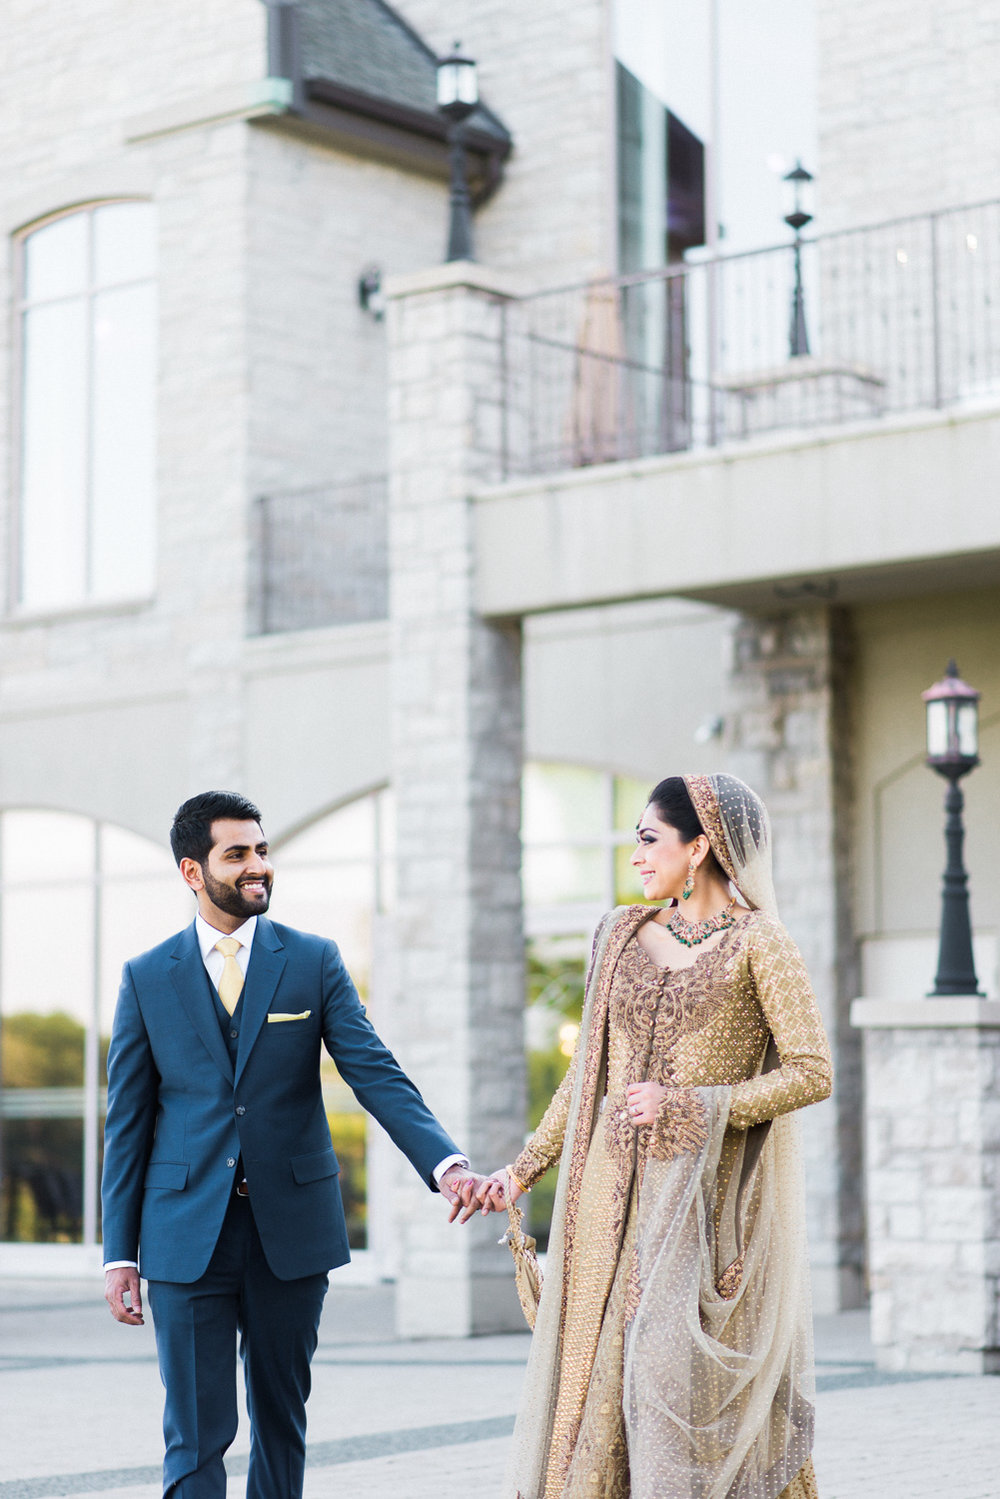 maha_salman_copper_creek_wedding-21.jpg